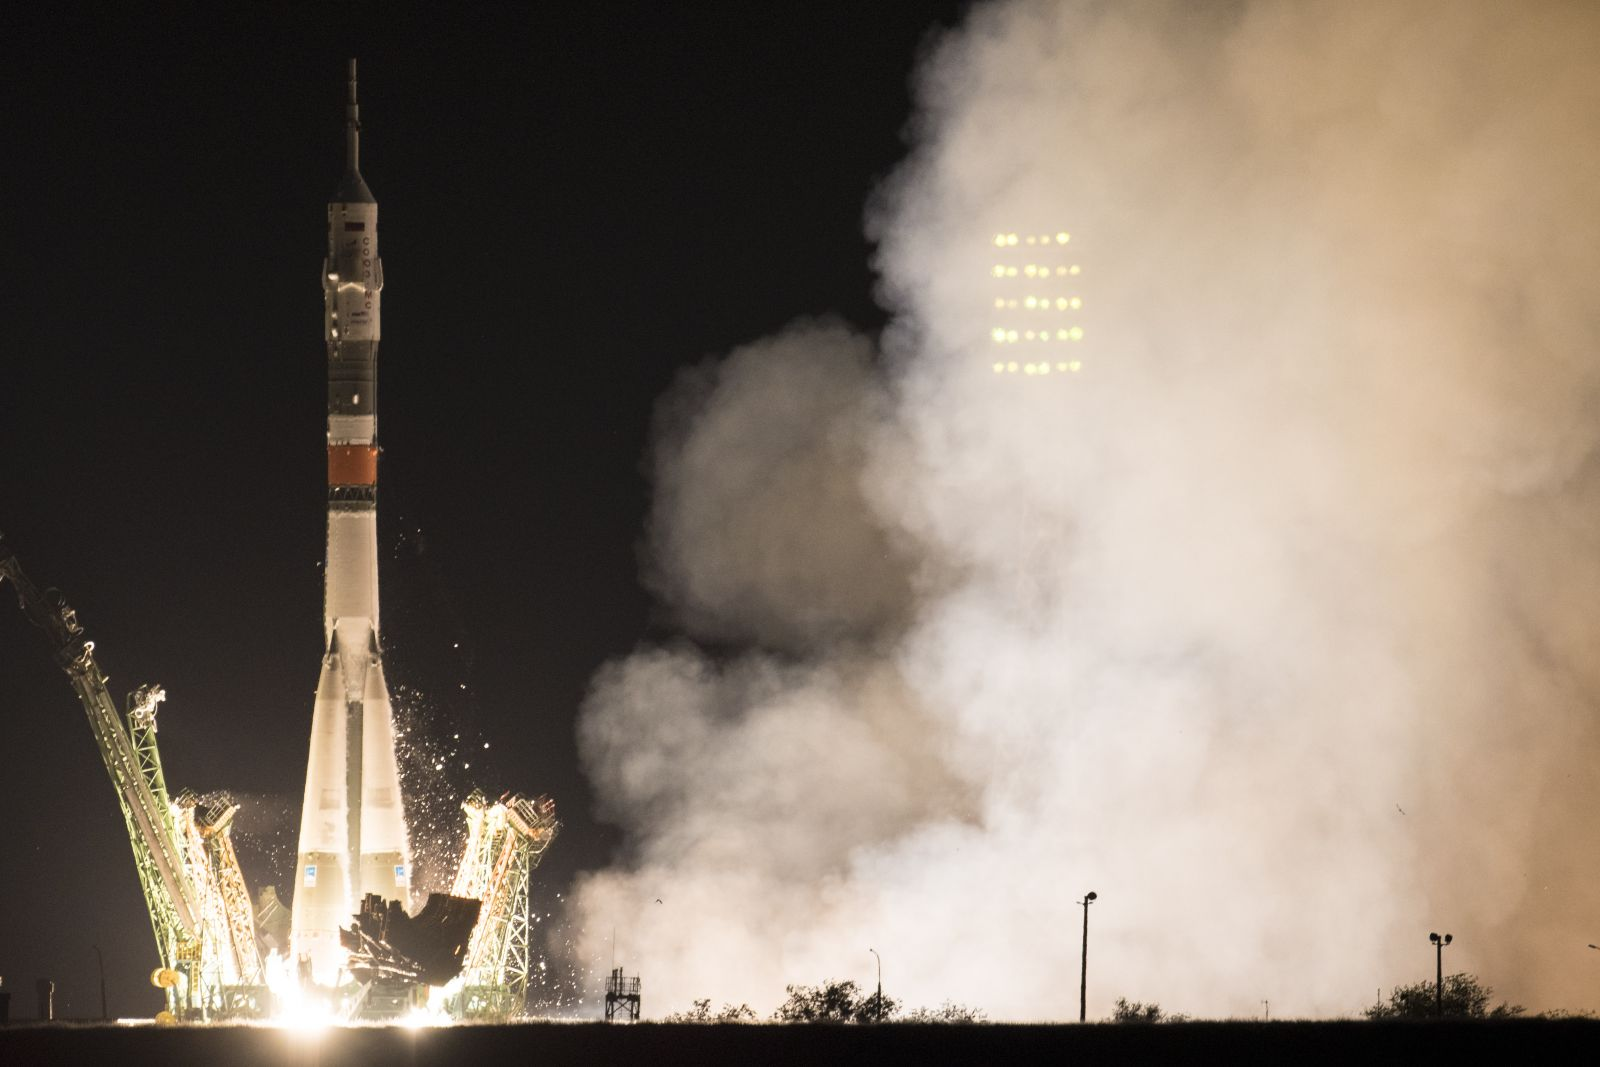 Expedition 60's Soyuz Commander Alexander Skvortsov (Roscosmos), flight engineer Drew Morgan (NASA), and flight engineer Luca Parmitano (ESA) lift off from the Baikonur Cosmodrone's Launch Complex 1 in Kazakhstan on Saturday, July 20, 2019. Photo Credit: Joel Kowsky / NASA